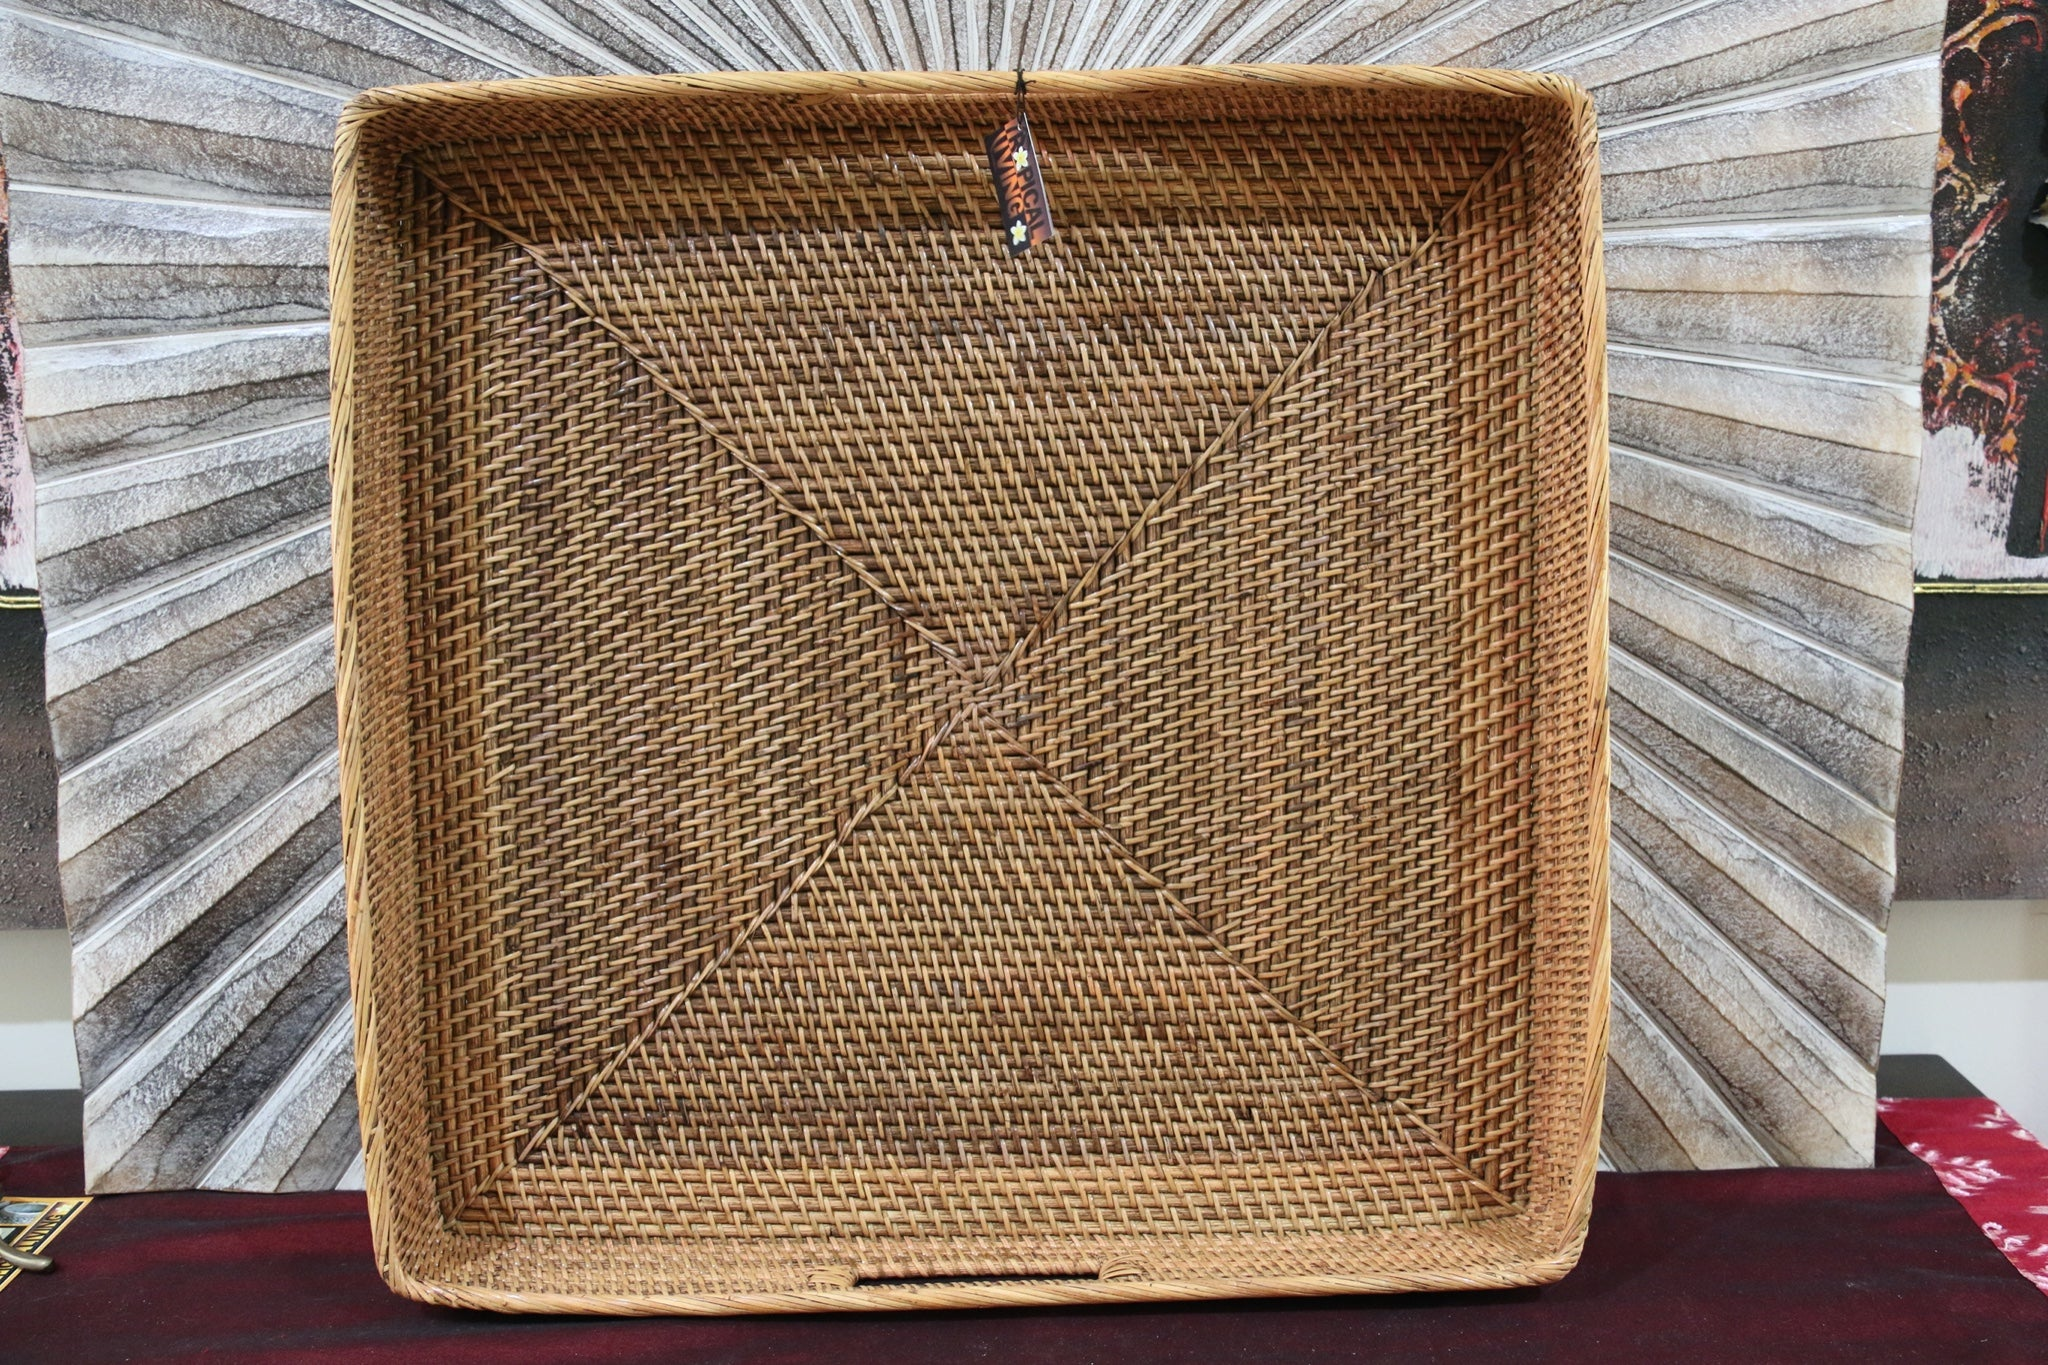 NEW Balinese Woven Rattan Open Basket / Tray - Choose from 2 Sizes...